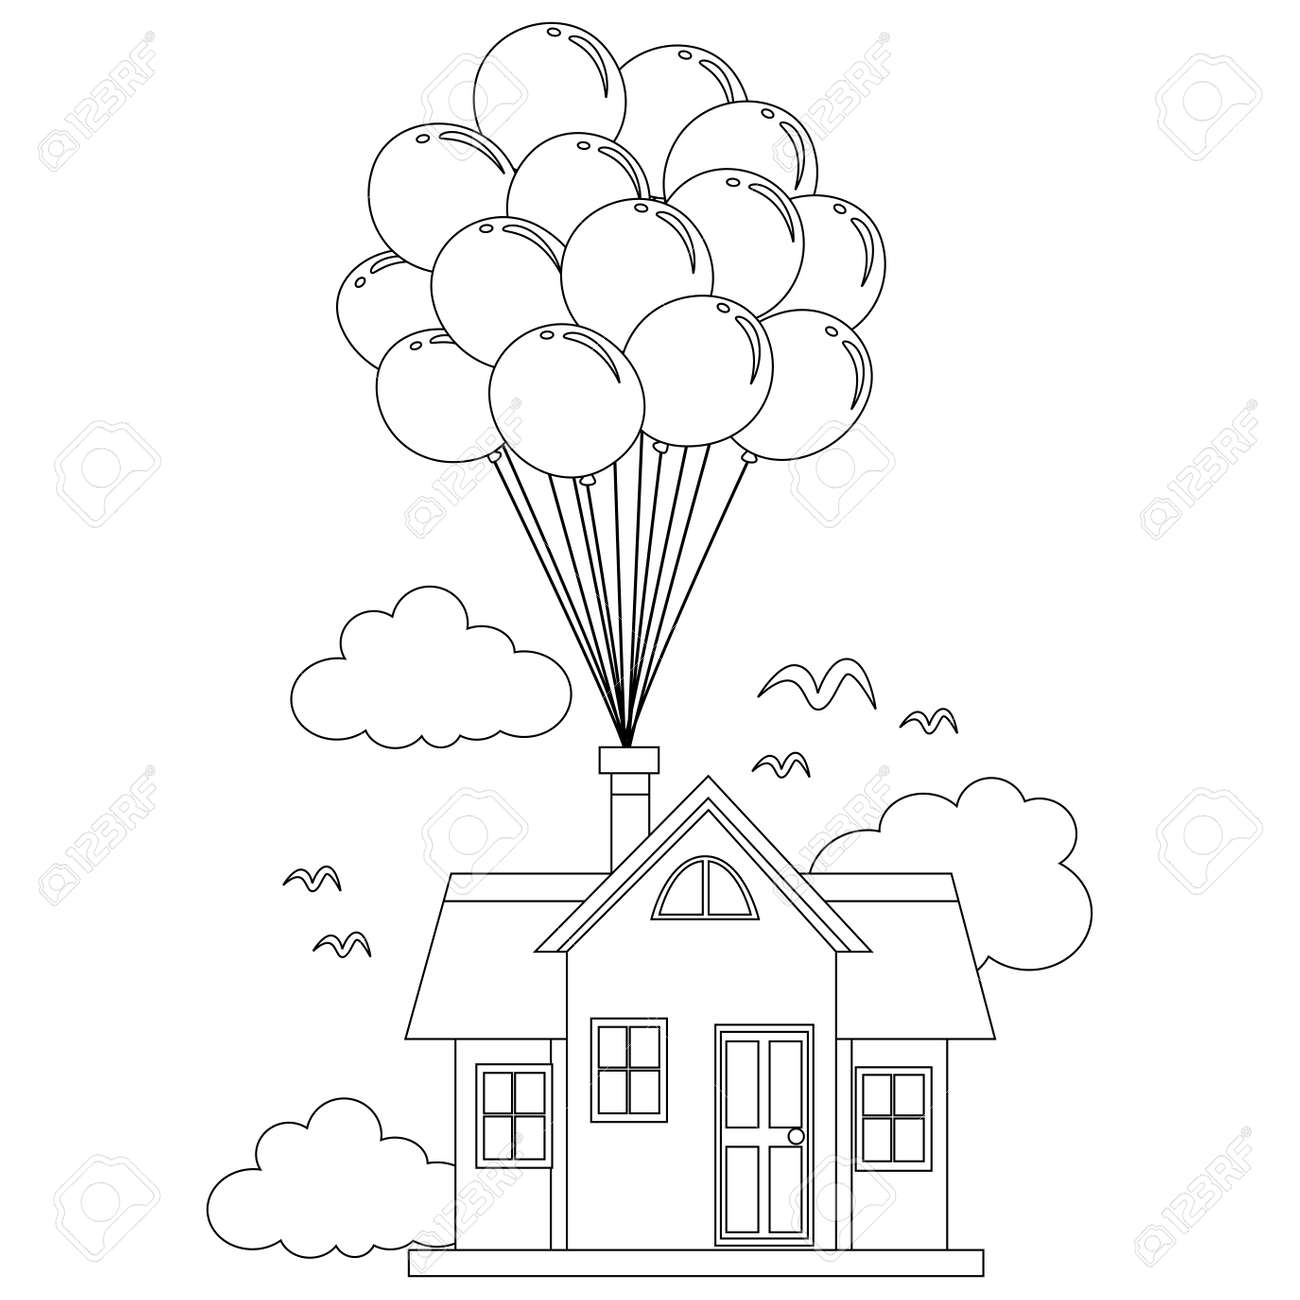 Coloring Book Outlined House With Balloon Royalty Free Cliparts